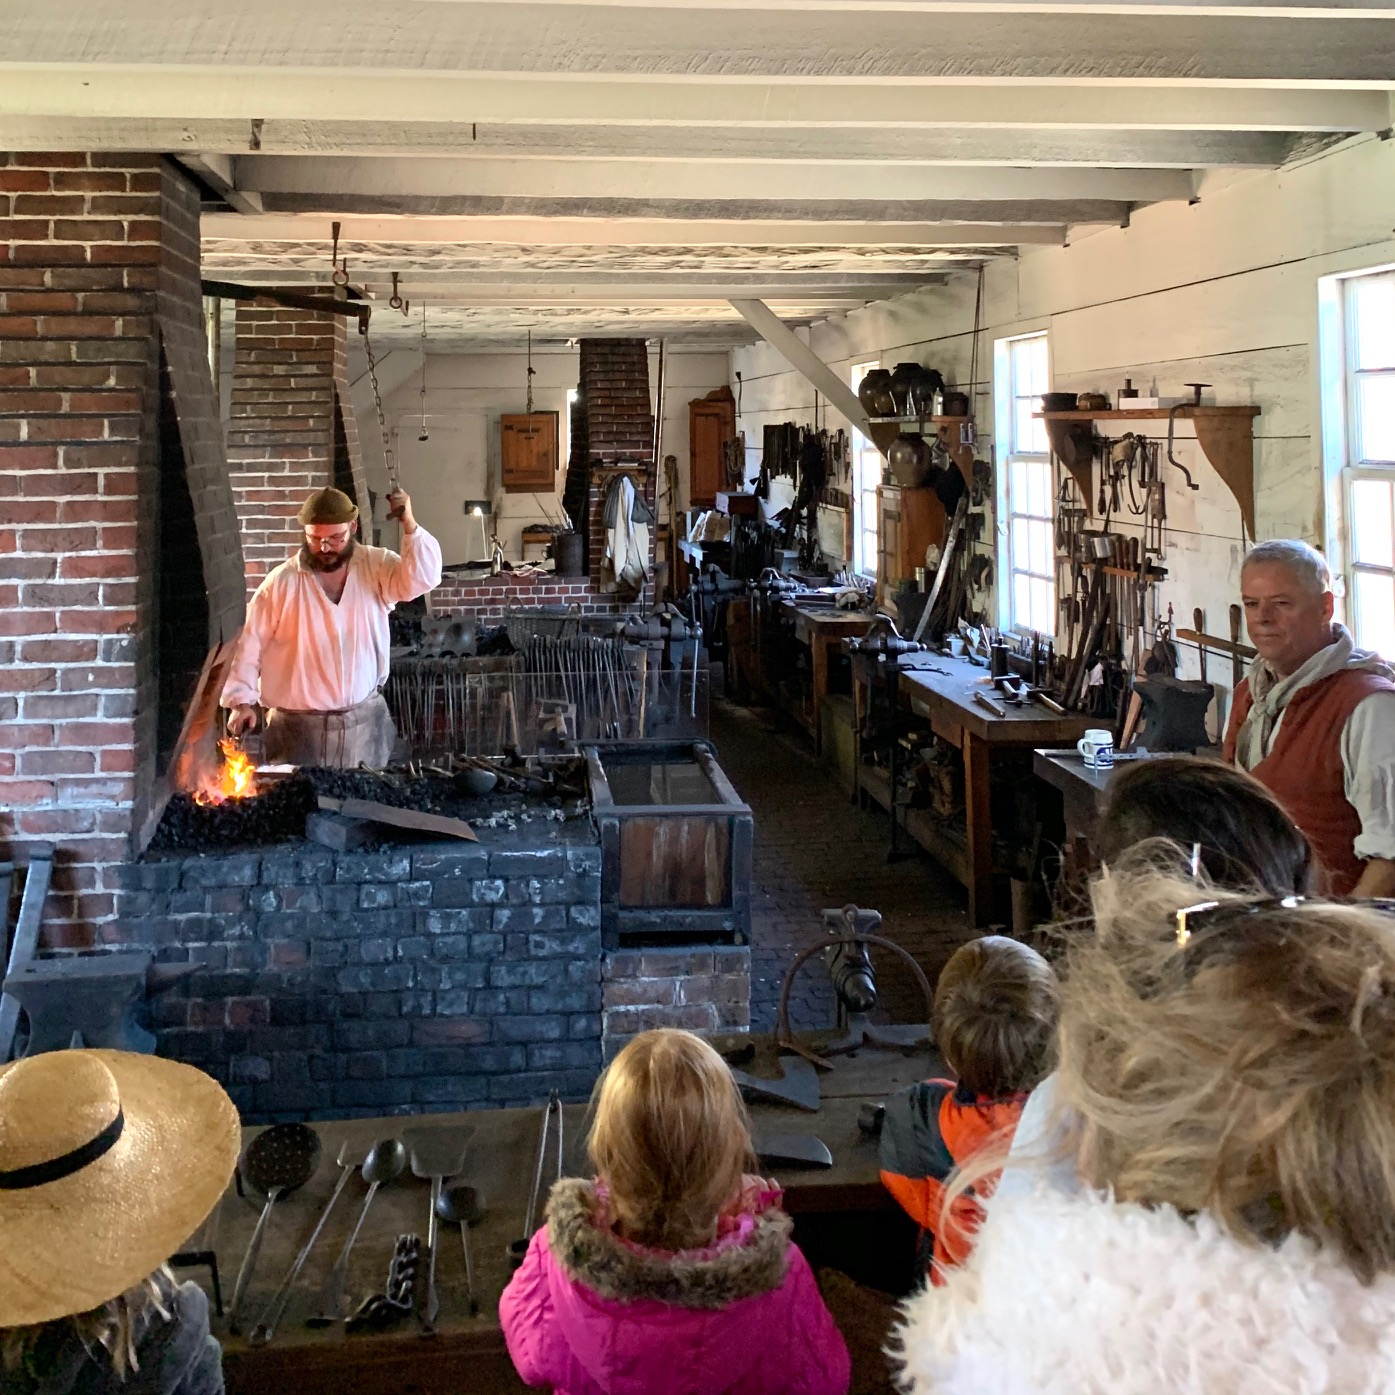 Onlookers watch as a blacksmith dressed in authentic period attire works in this historic, revolutionary era metal workshop.